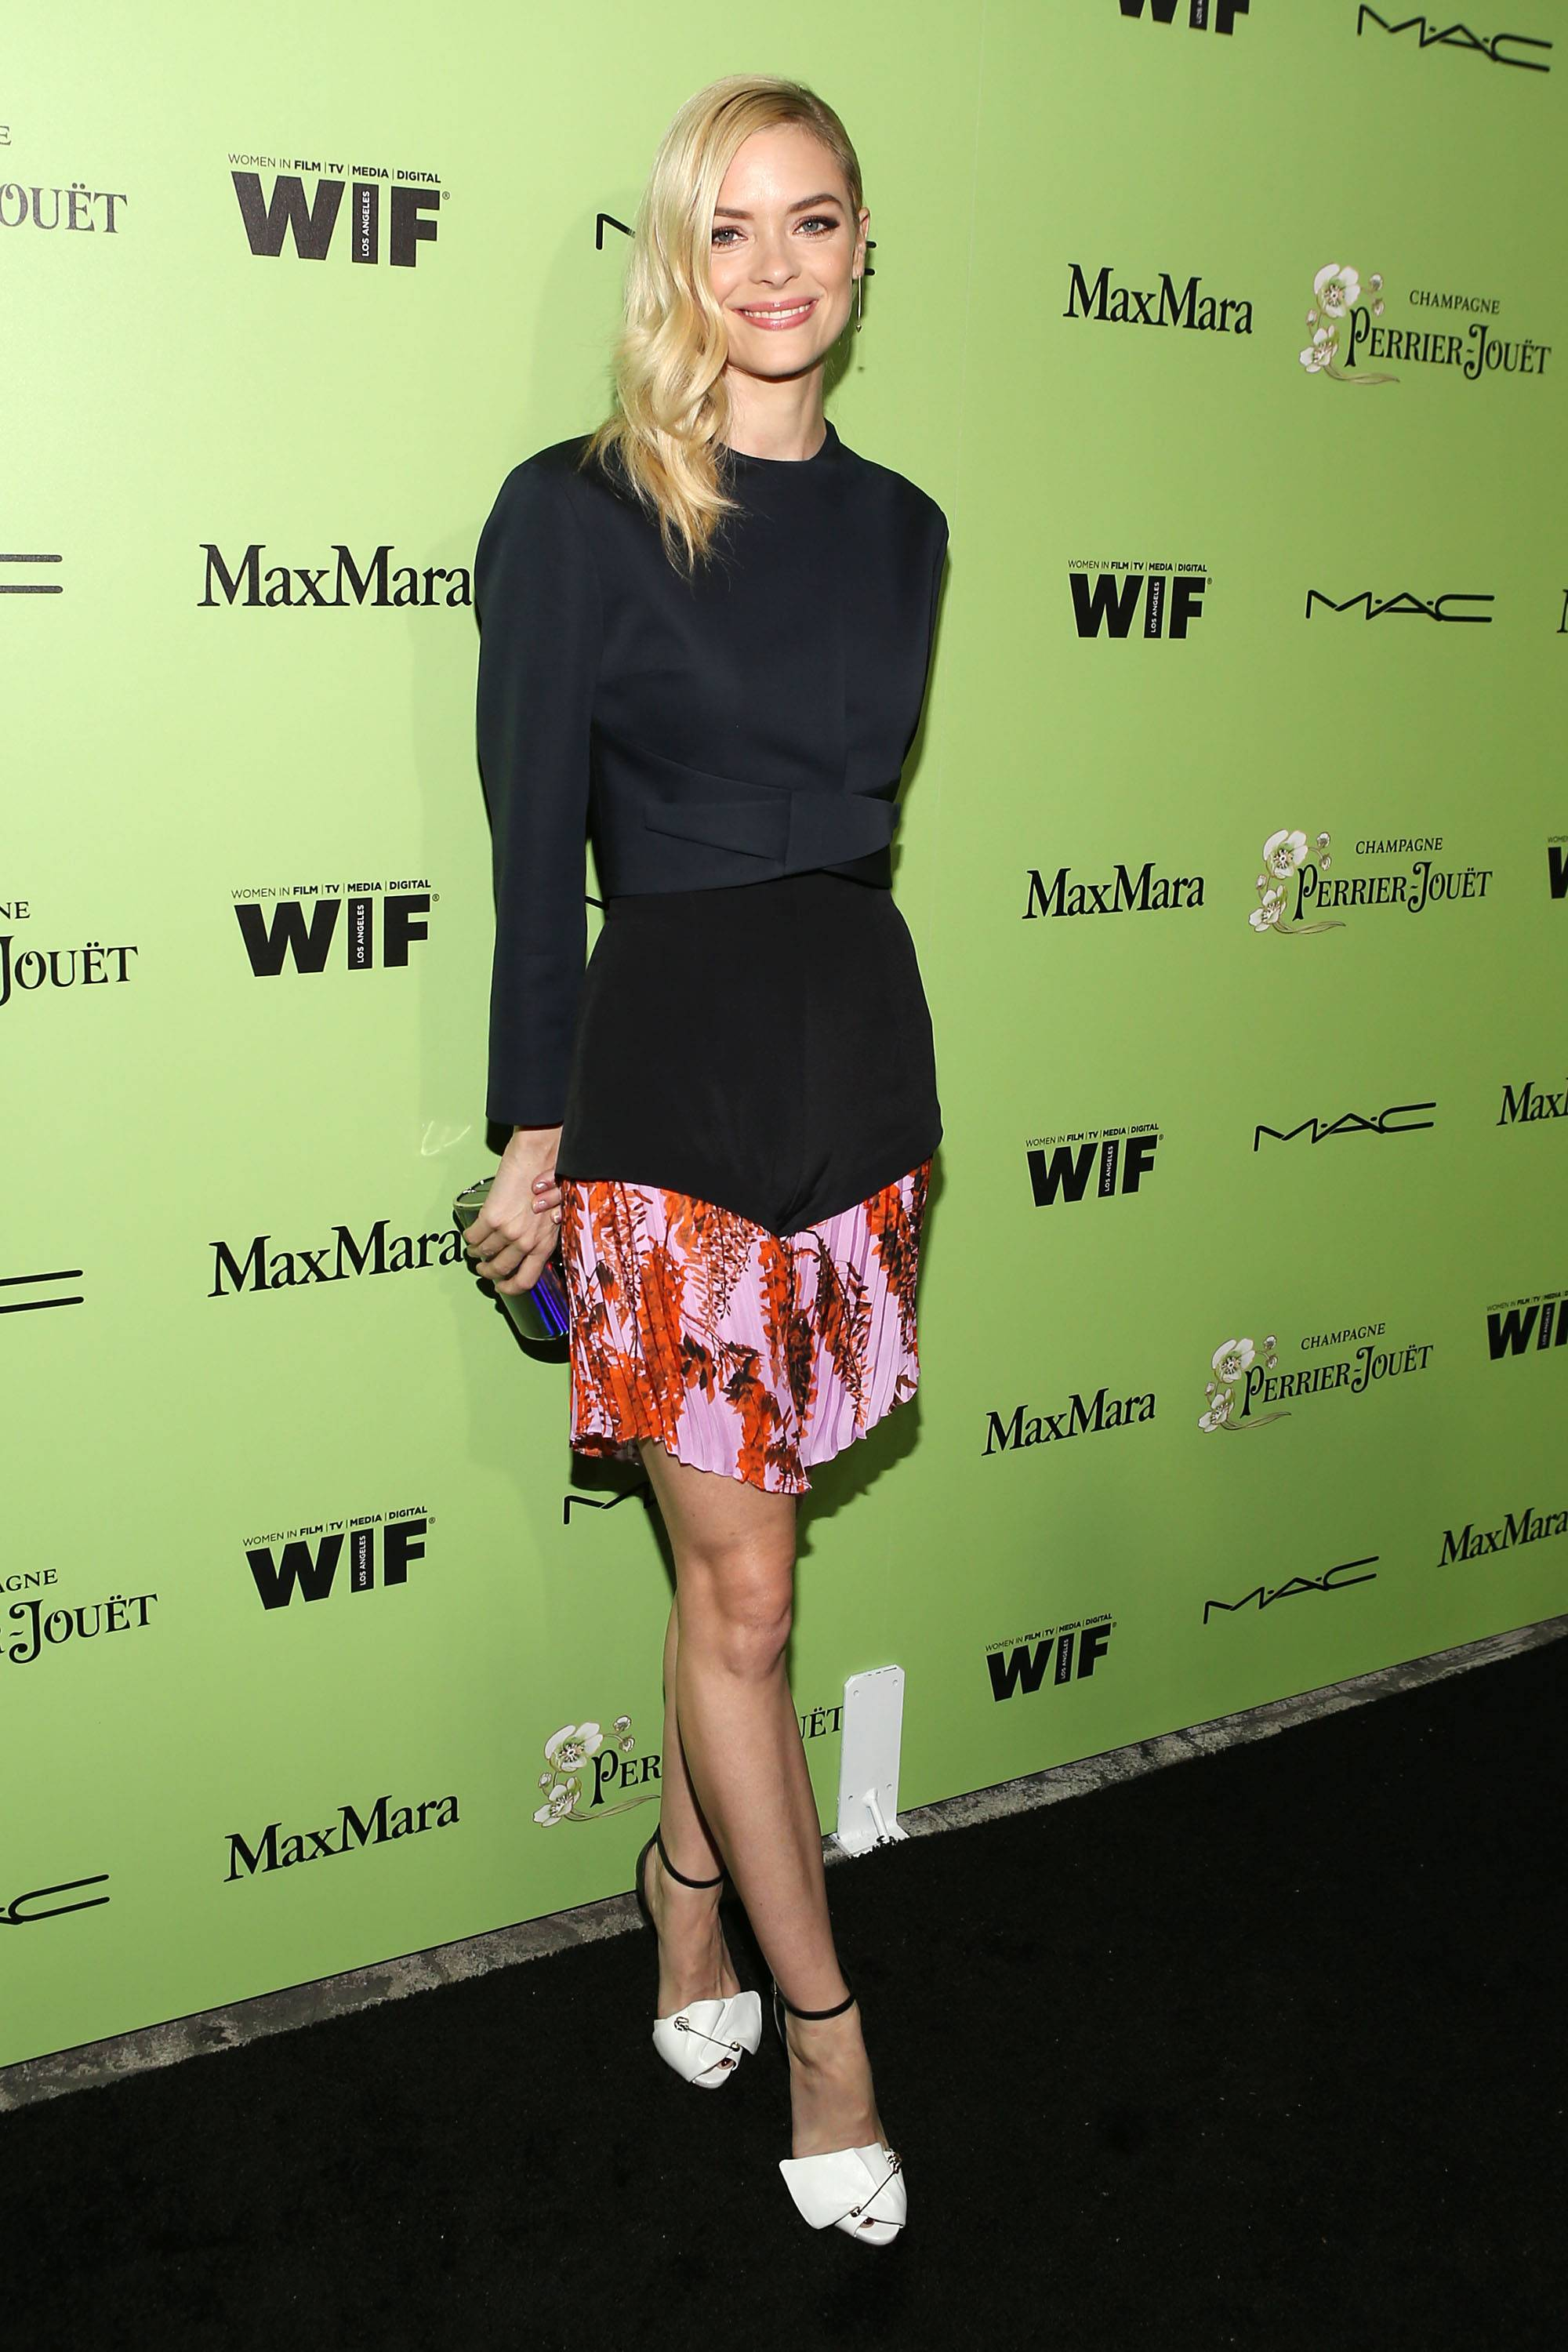 Women In Film Pre-Oscar Cocktail Party Presented By Perrier-Jouet, MAC Cosmetics & MaxMara - Red Carpet